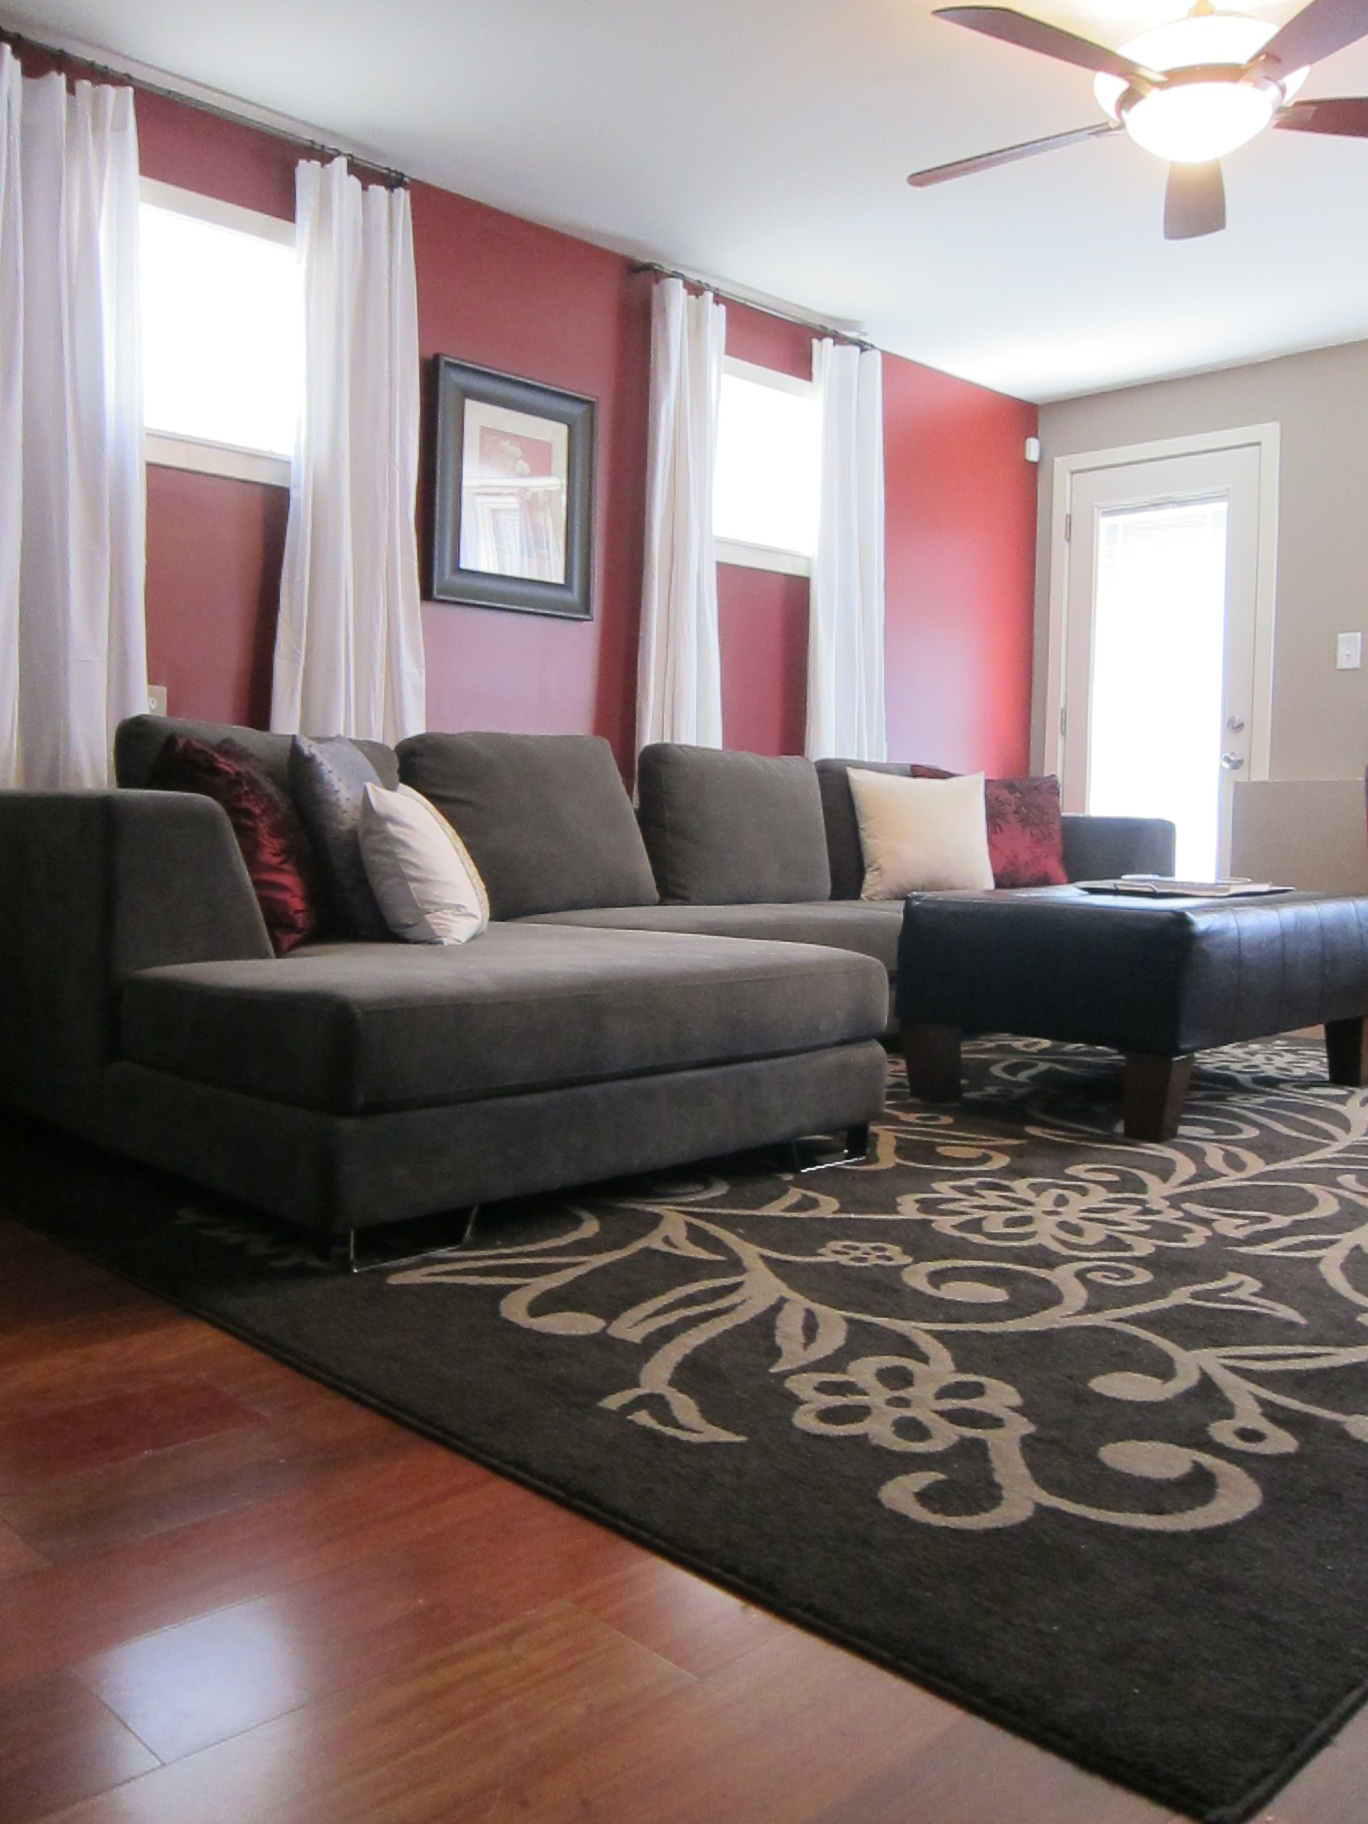 Red Wall Decor For Living Rooms | Home Design Plan With Most Up To Date Wall Accents For Grey Room (View 9 of 15)